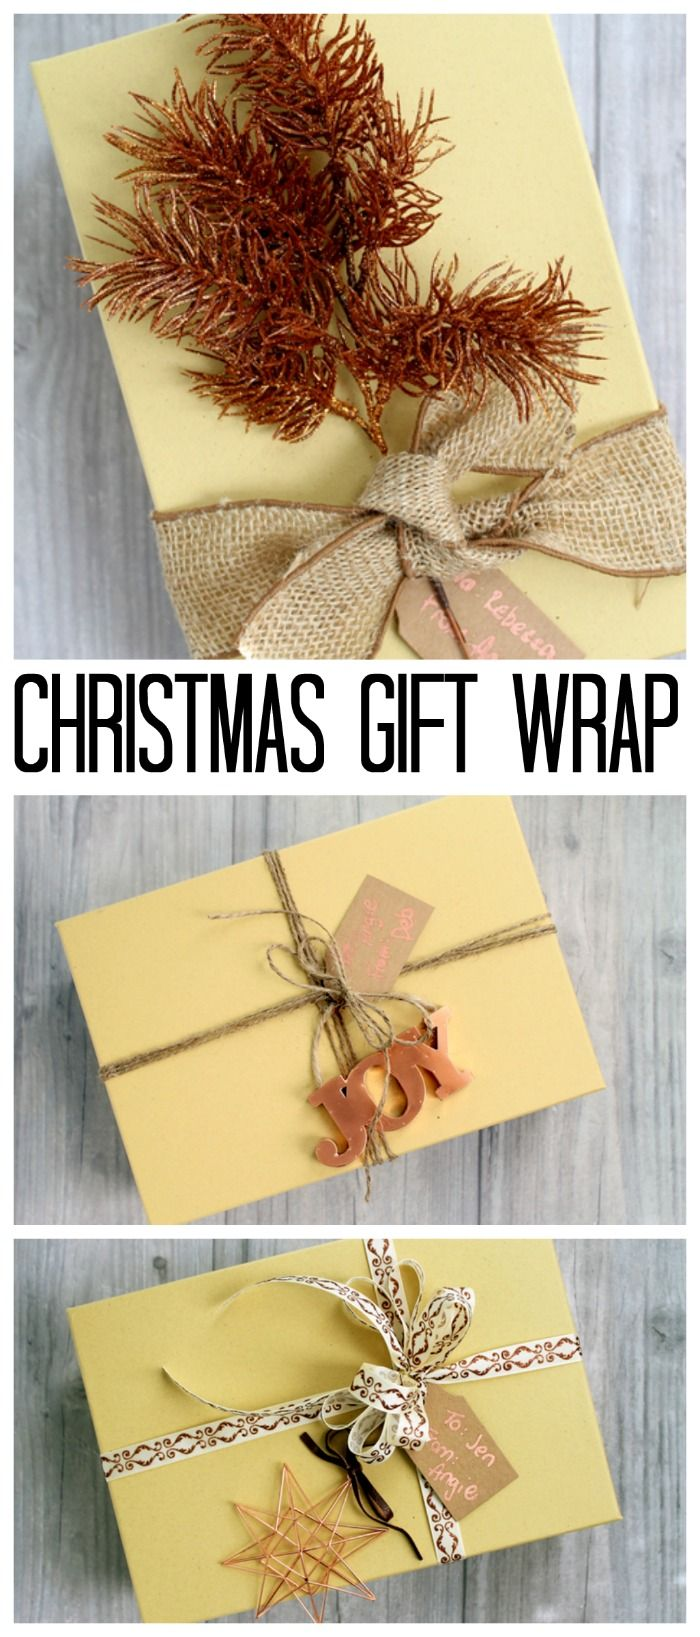 Christmas Gift Wrap: Quick and Easy Ideas | Pinterest | Christmas ...